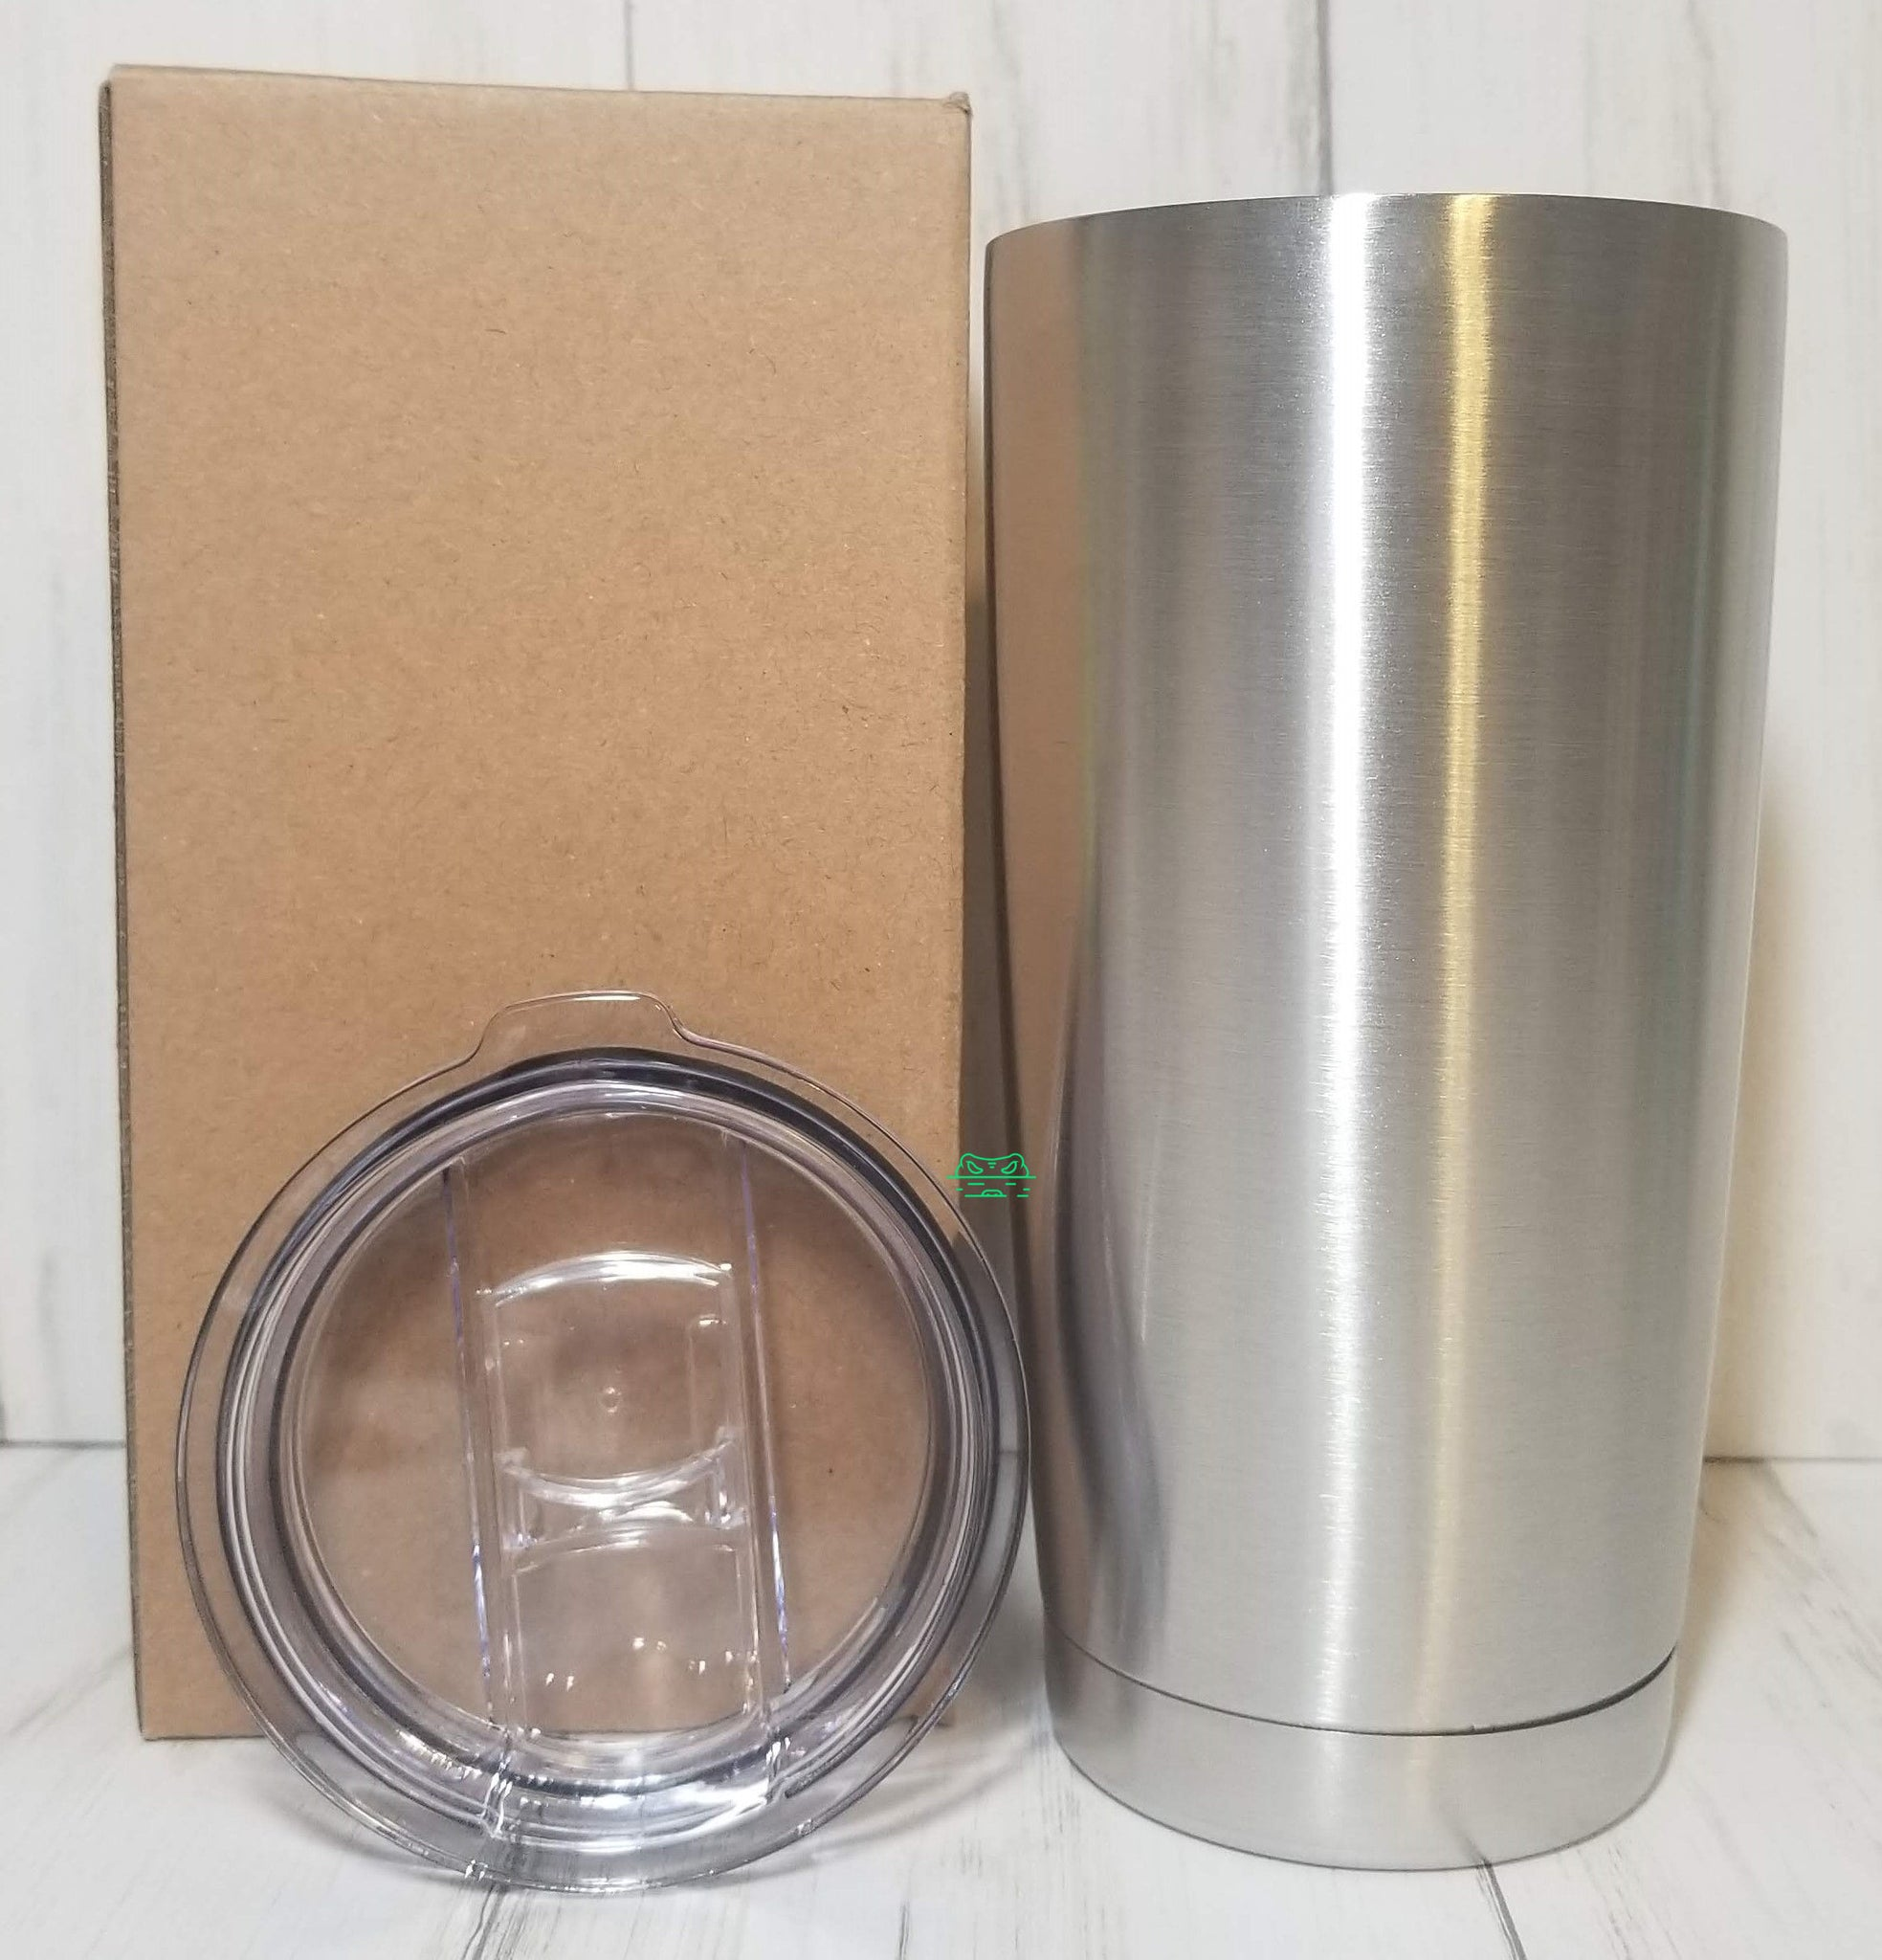 20 oz. Stainless Steel Tumbler Case (32)